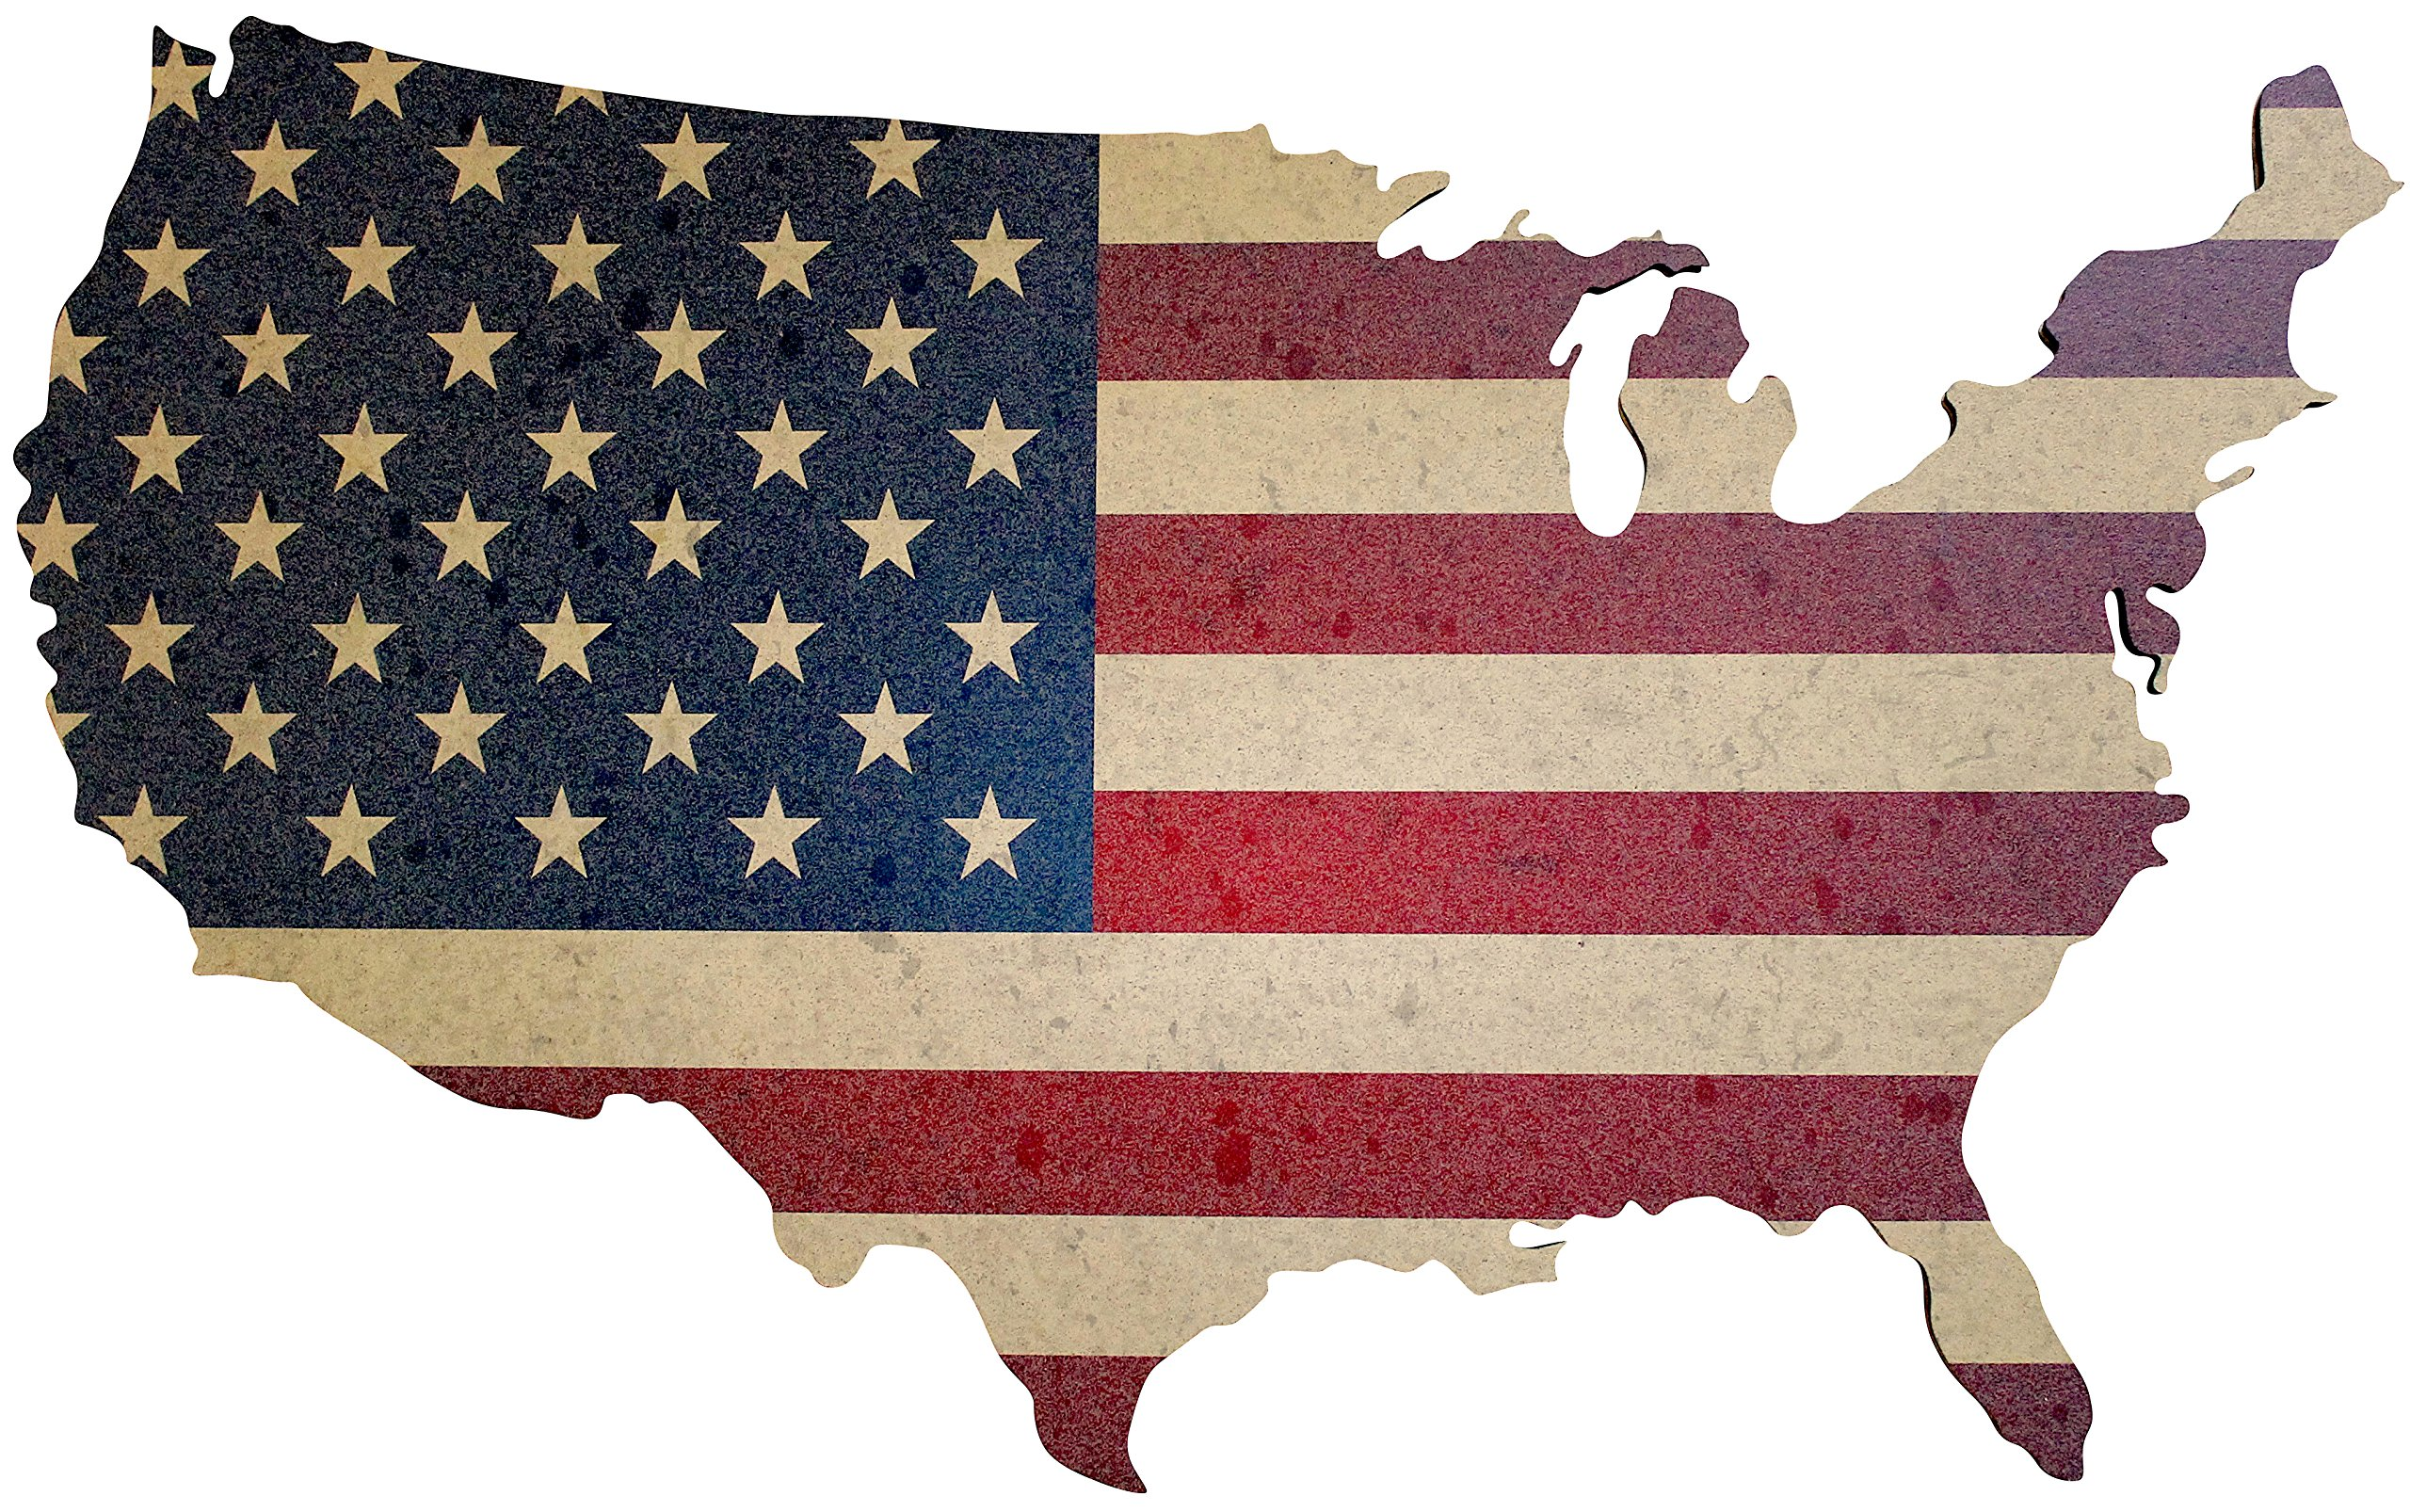 Cork Bulletin Board - US Map with Vintage American Flag Print - Large Decorative 36x22 Inch Wall Art - Pin Board Message Organizer for Home or Office